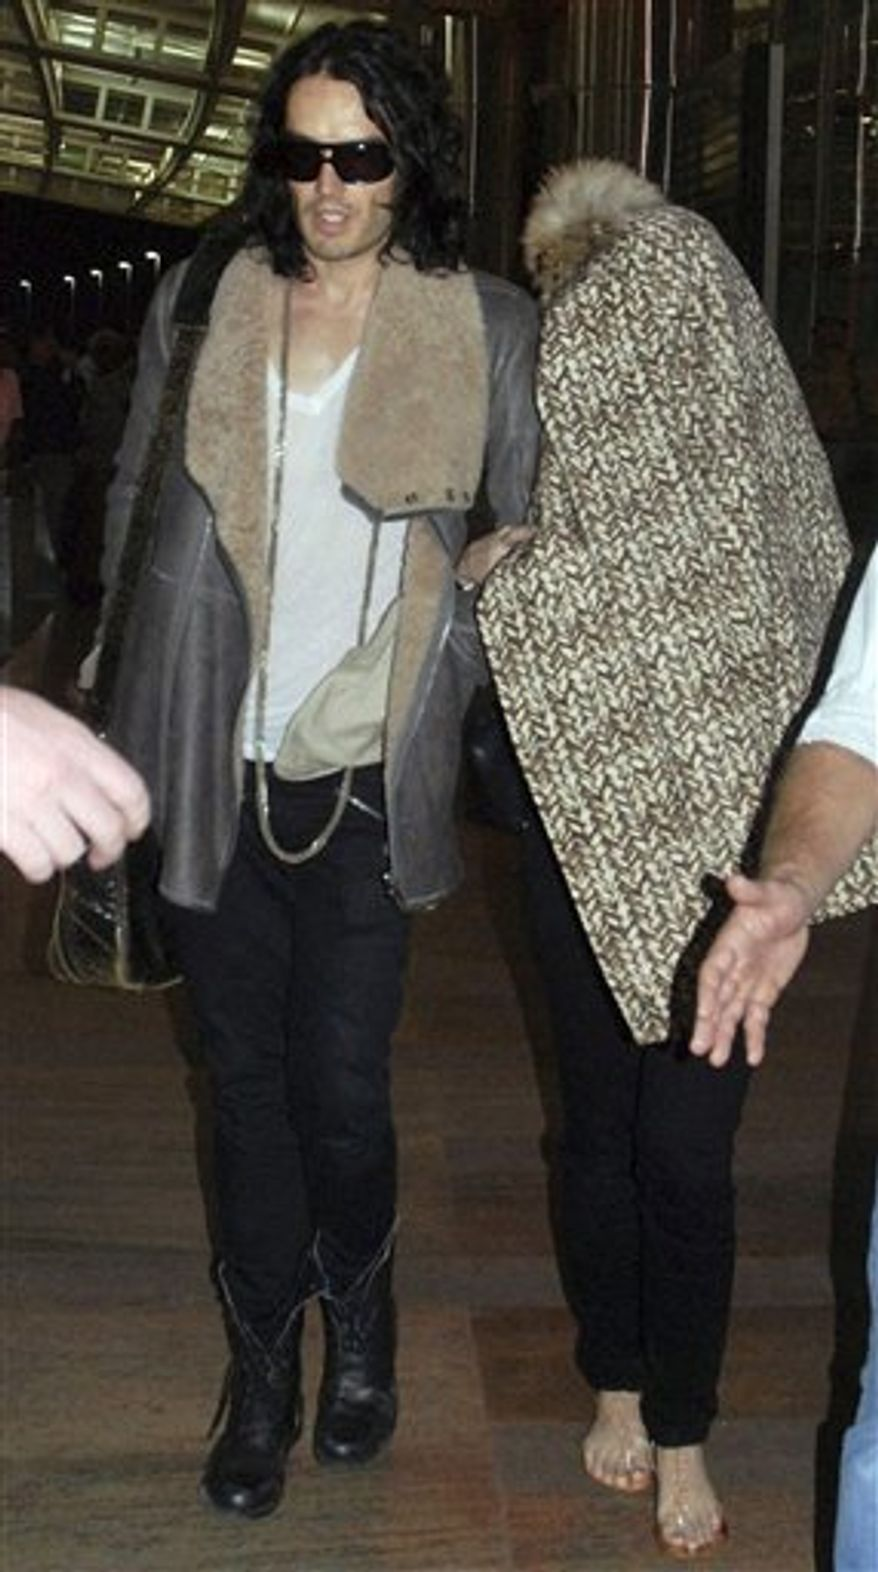 In this photo taken Wednesday, Oct. 20, 2010, British actor-comedian Russell Brand, left, walks with his fiance Katy Perry, face covered with a coat, after their arrival at the airport in Jaipur, India, Brand and Perry are reportedly to be married later this week in the northern Indian town of Jaipur. (AP Photo)